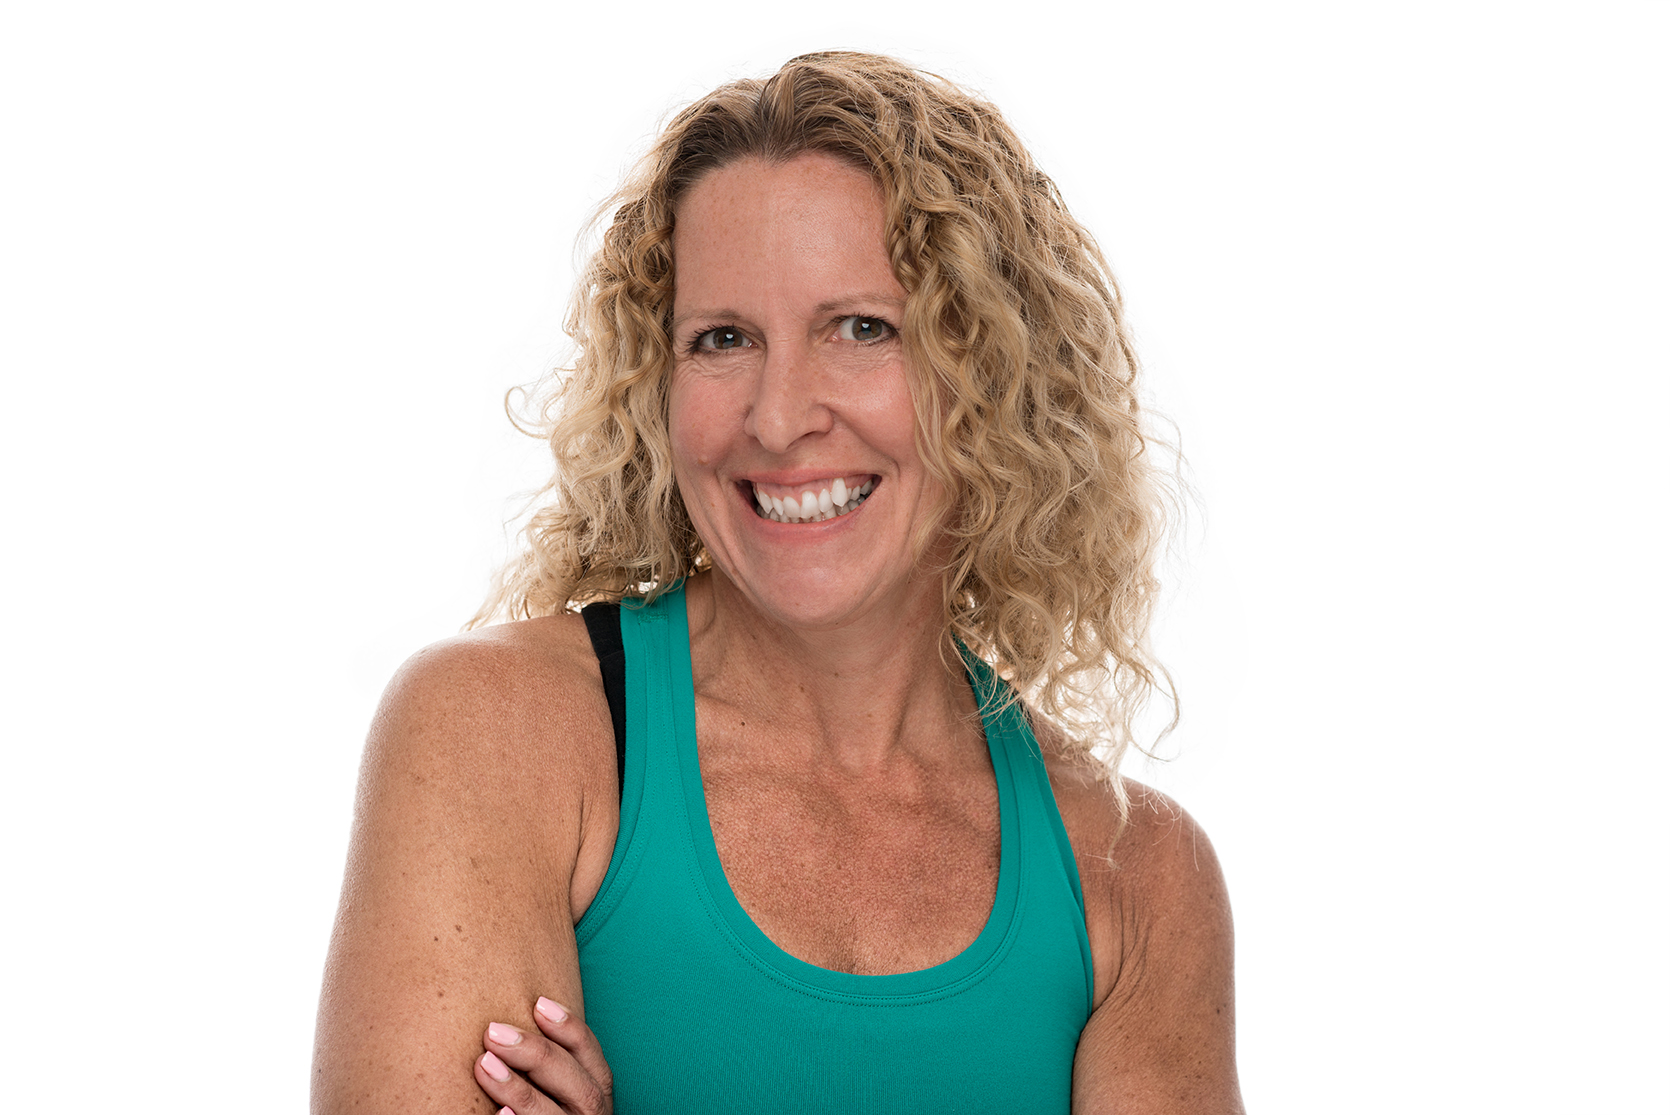 Karin Mulligan - • 24 Years in the fitness industry• Certified personal trainer with ISSA• Certified group fitness instructor with AFFA • Certified Les Mills Instructor in BODYPUMP, GRIT and CXWORX• Teaches several group fitness formats weekly• Precision Nutrition Nutrition Coach